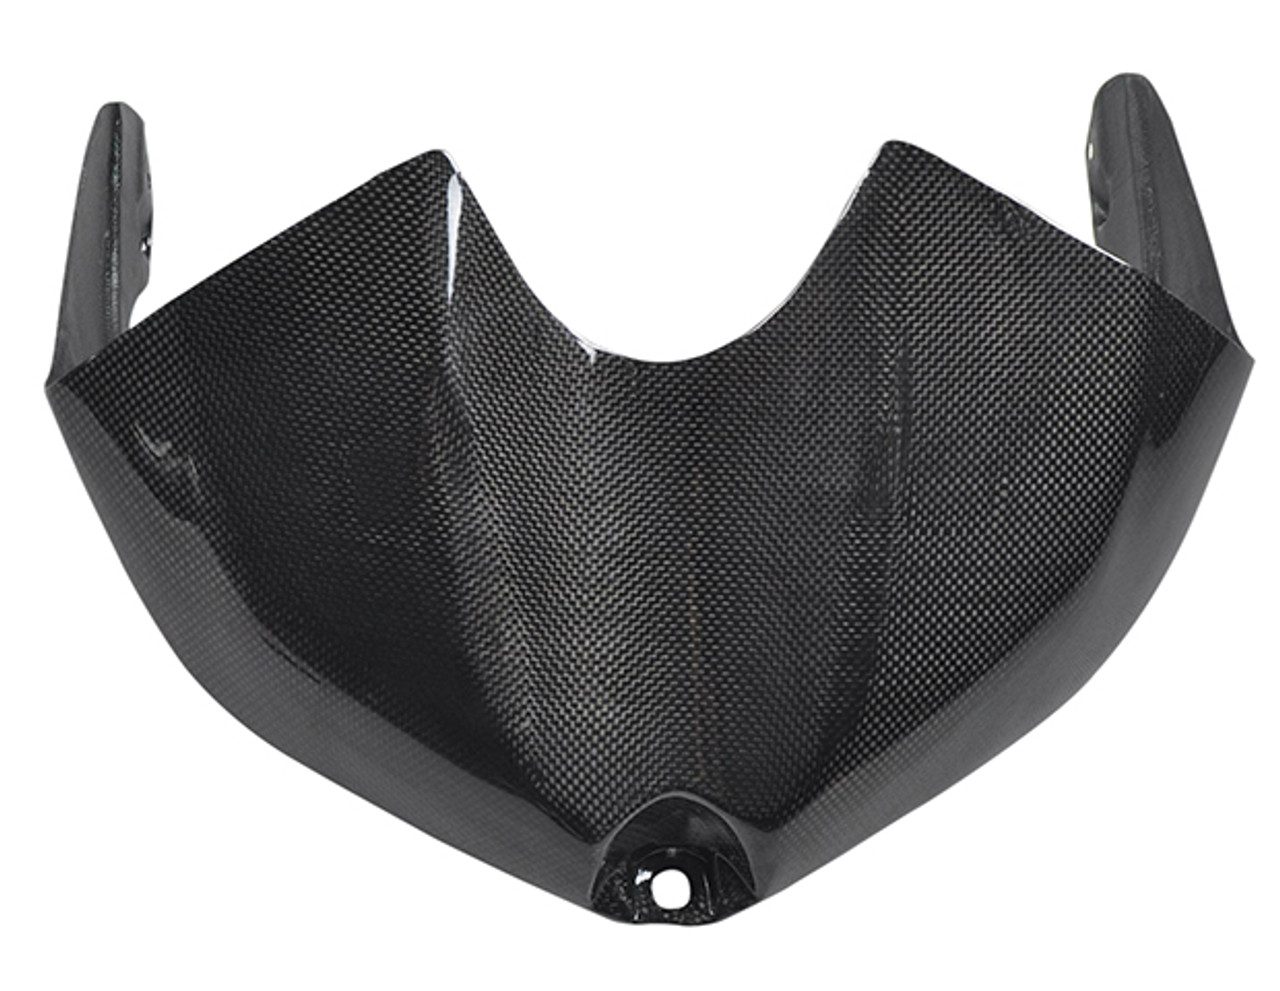 Tank Cover for Yamaha R6 08-16 in Glossy Plain Weave Carbon Fiber